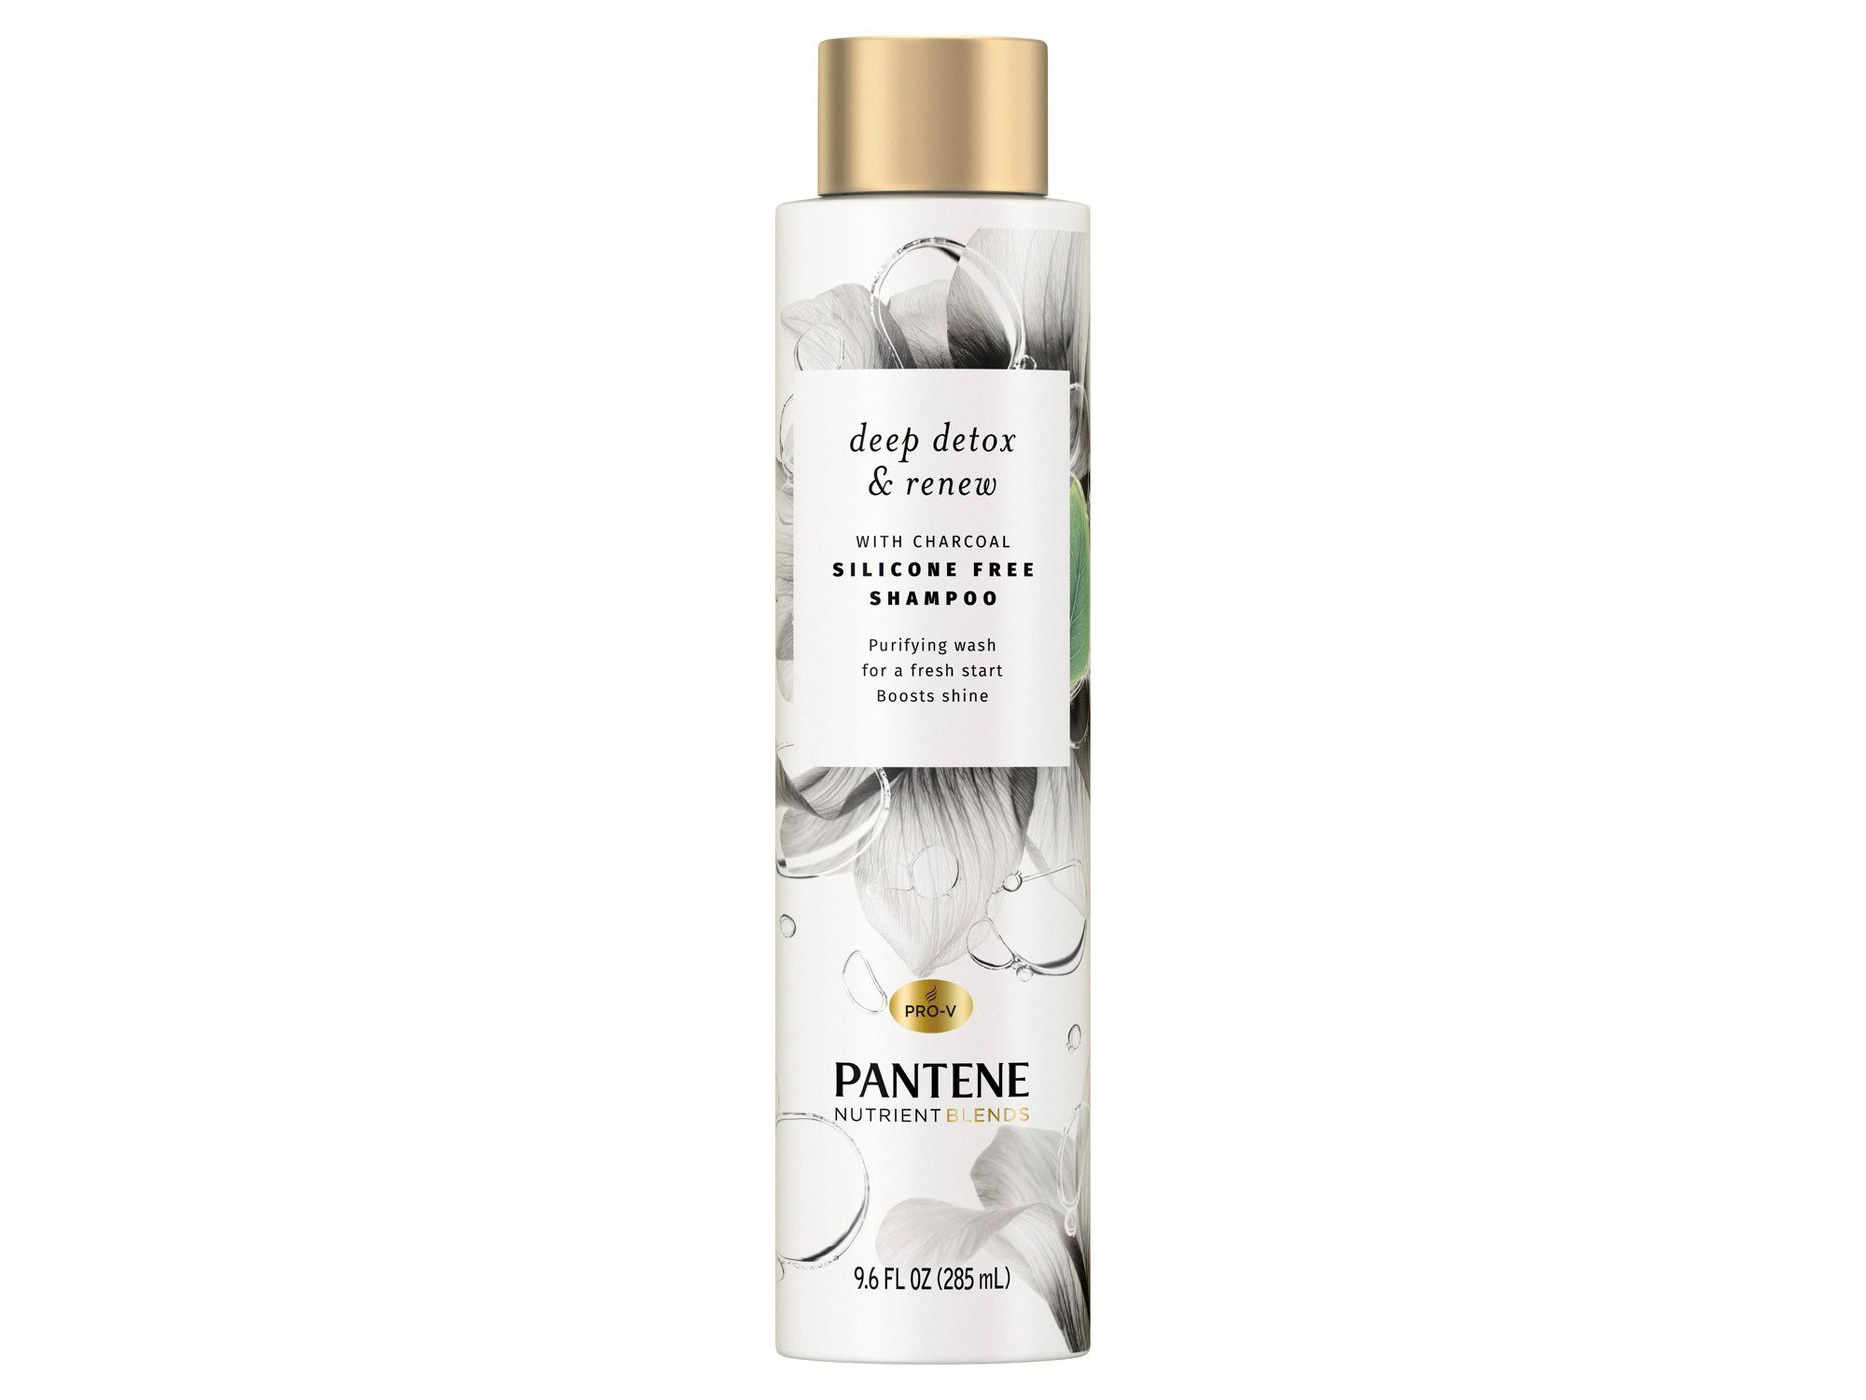 Pantene Blends Detox & Renew With Charcoal Shampoo